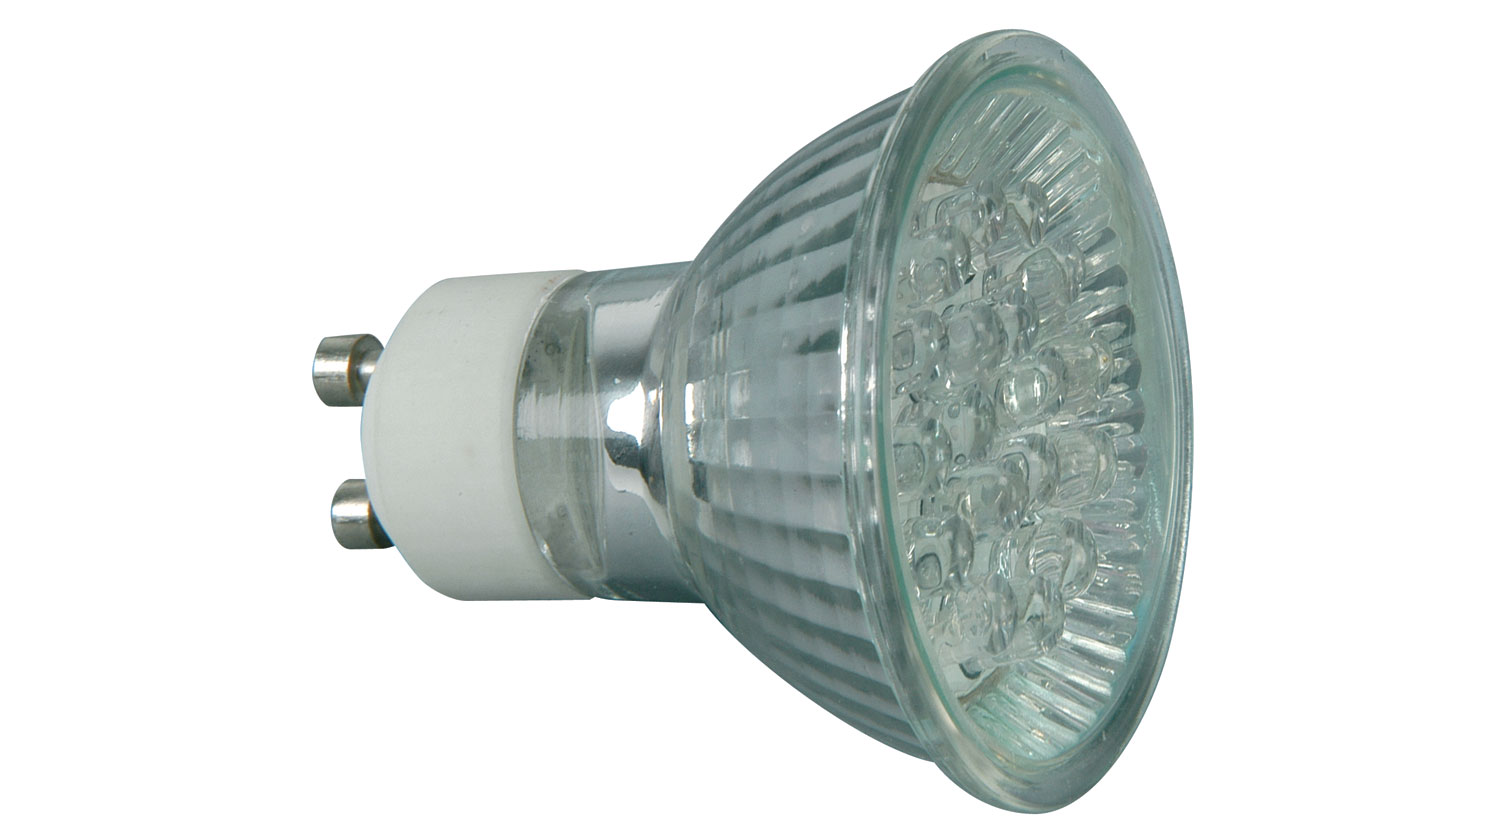 12 x LED GU10 lamp, 230Vac - Blue